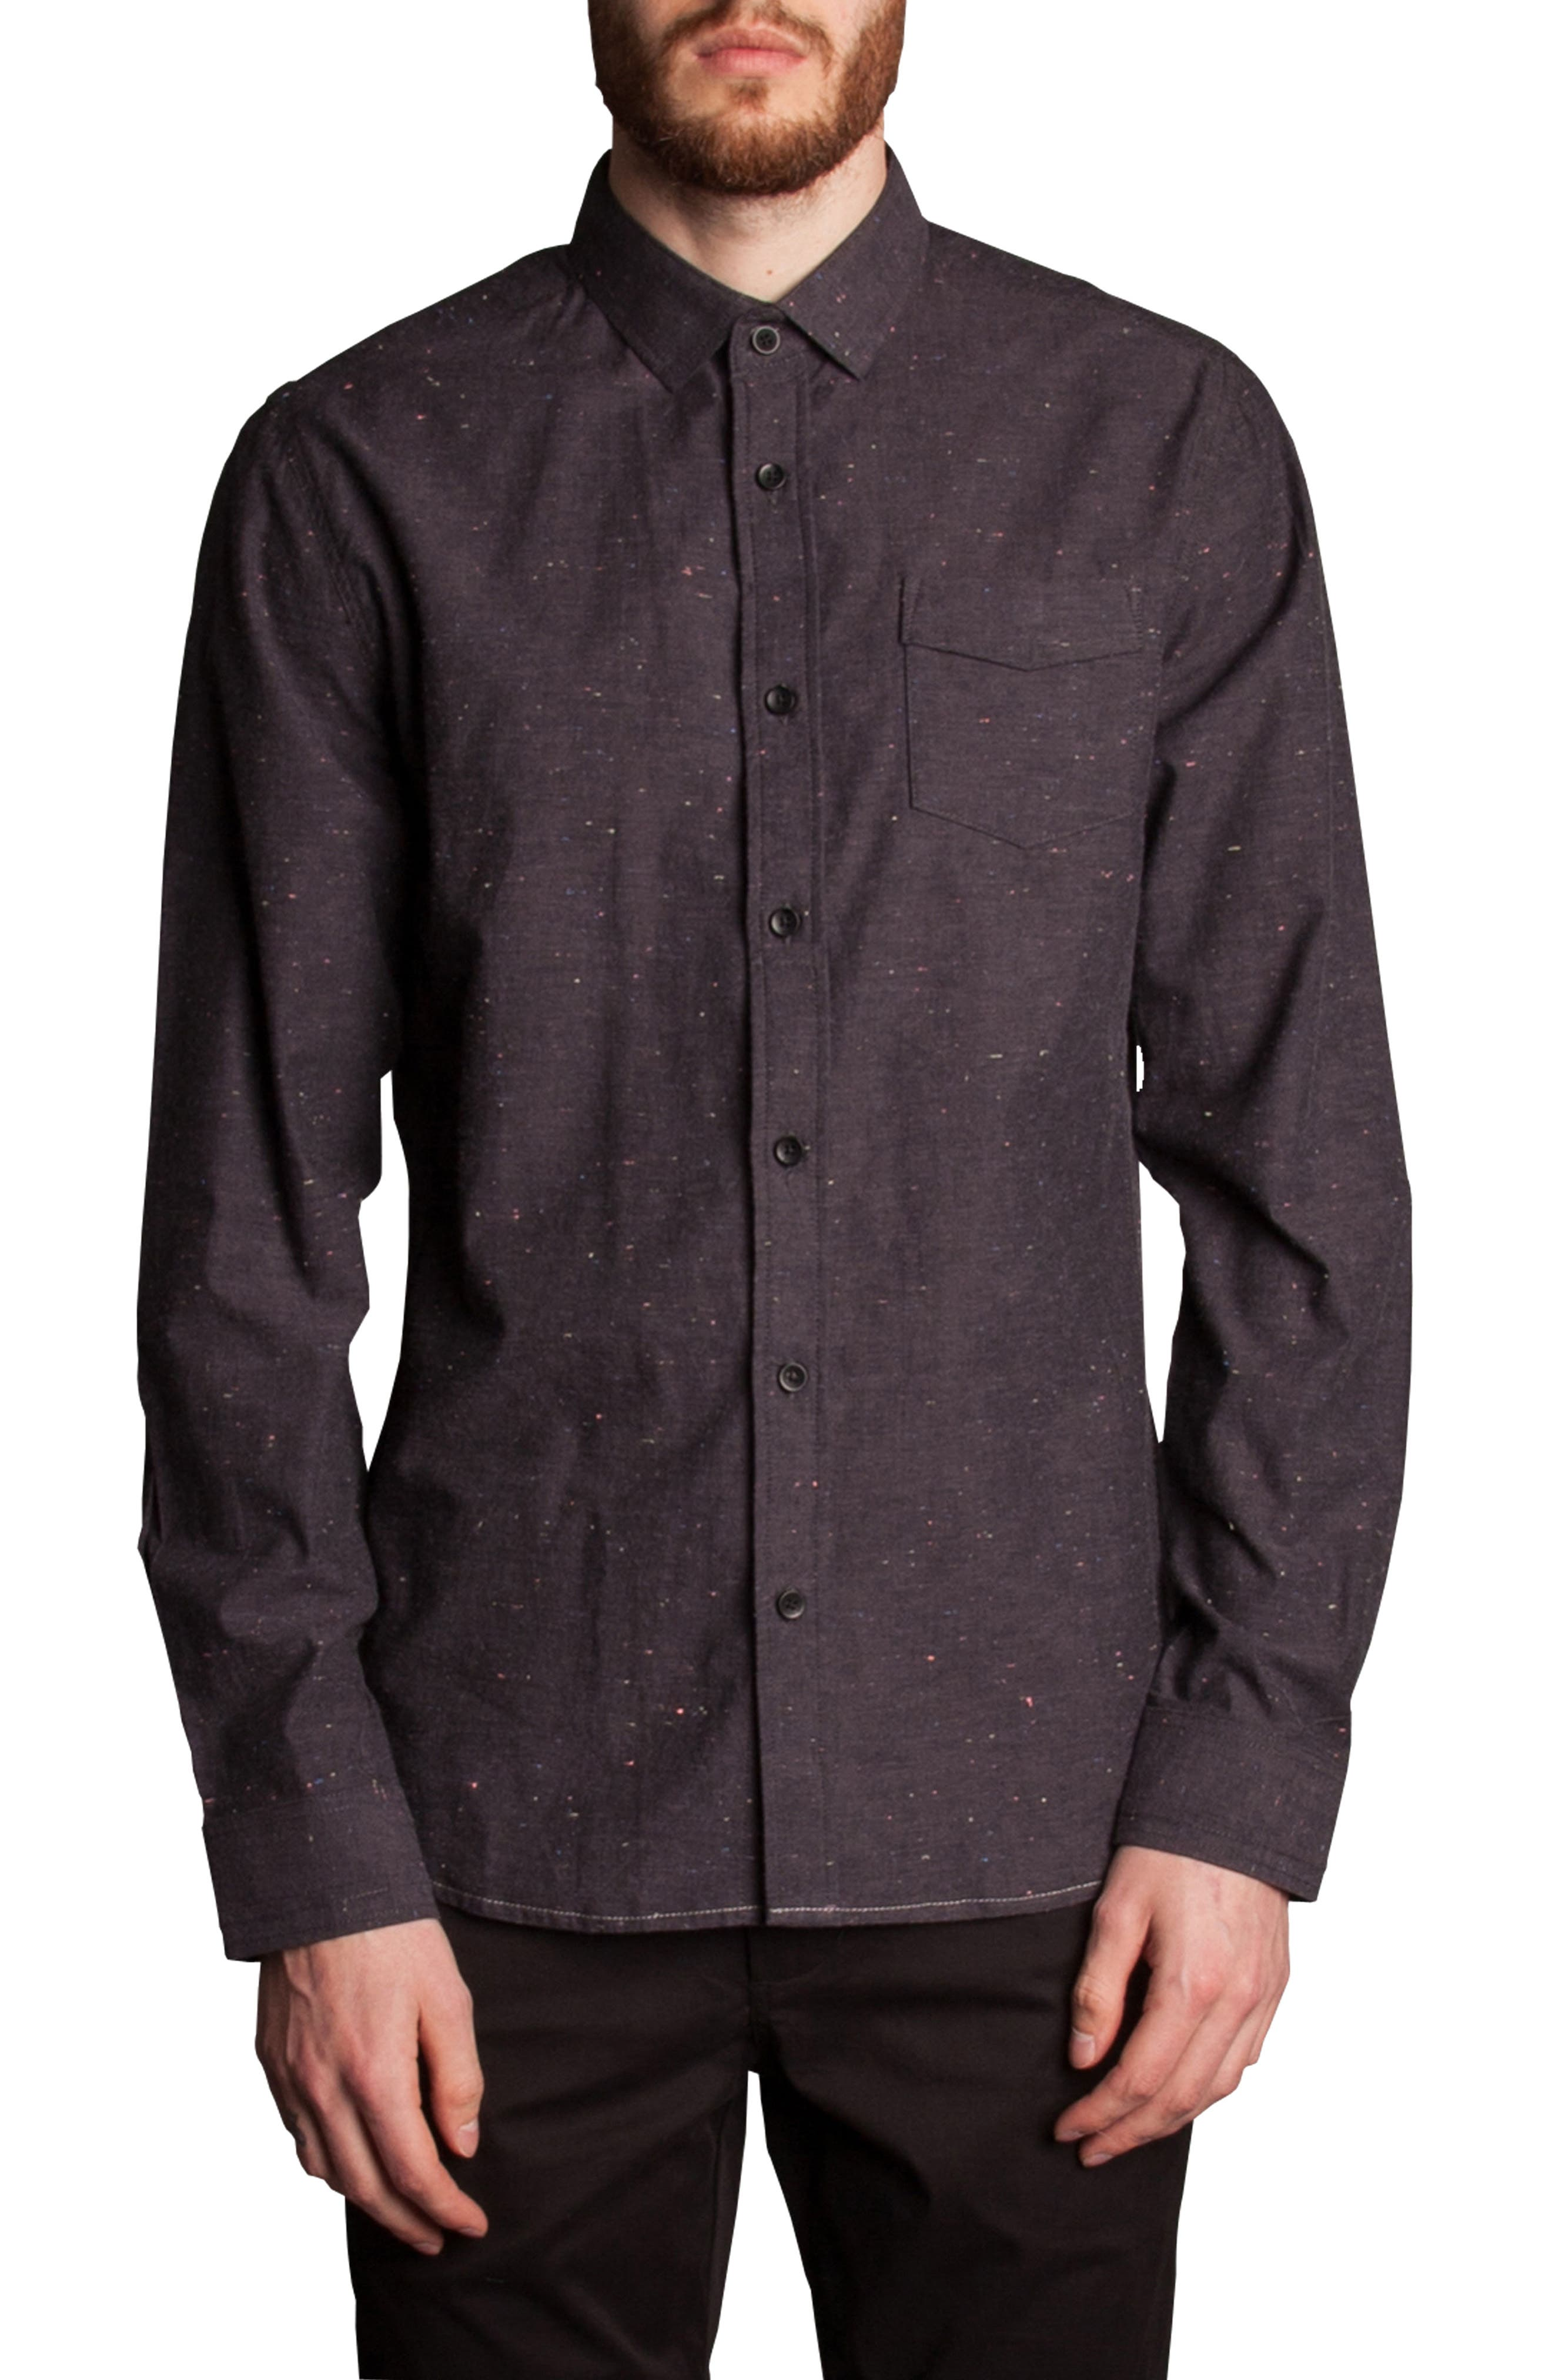 Alternate Image 1 Selected - Descendant of Thieves Base Speck Sport Shirt